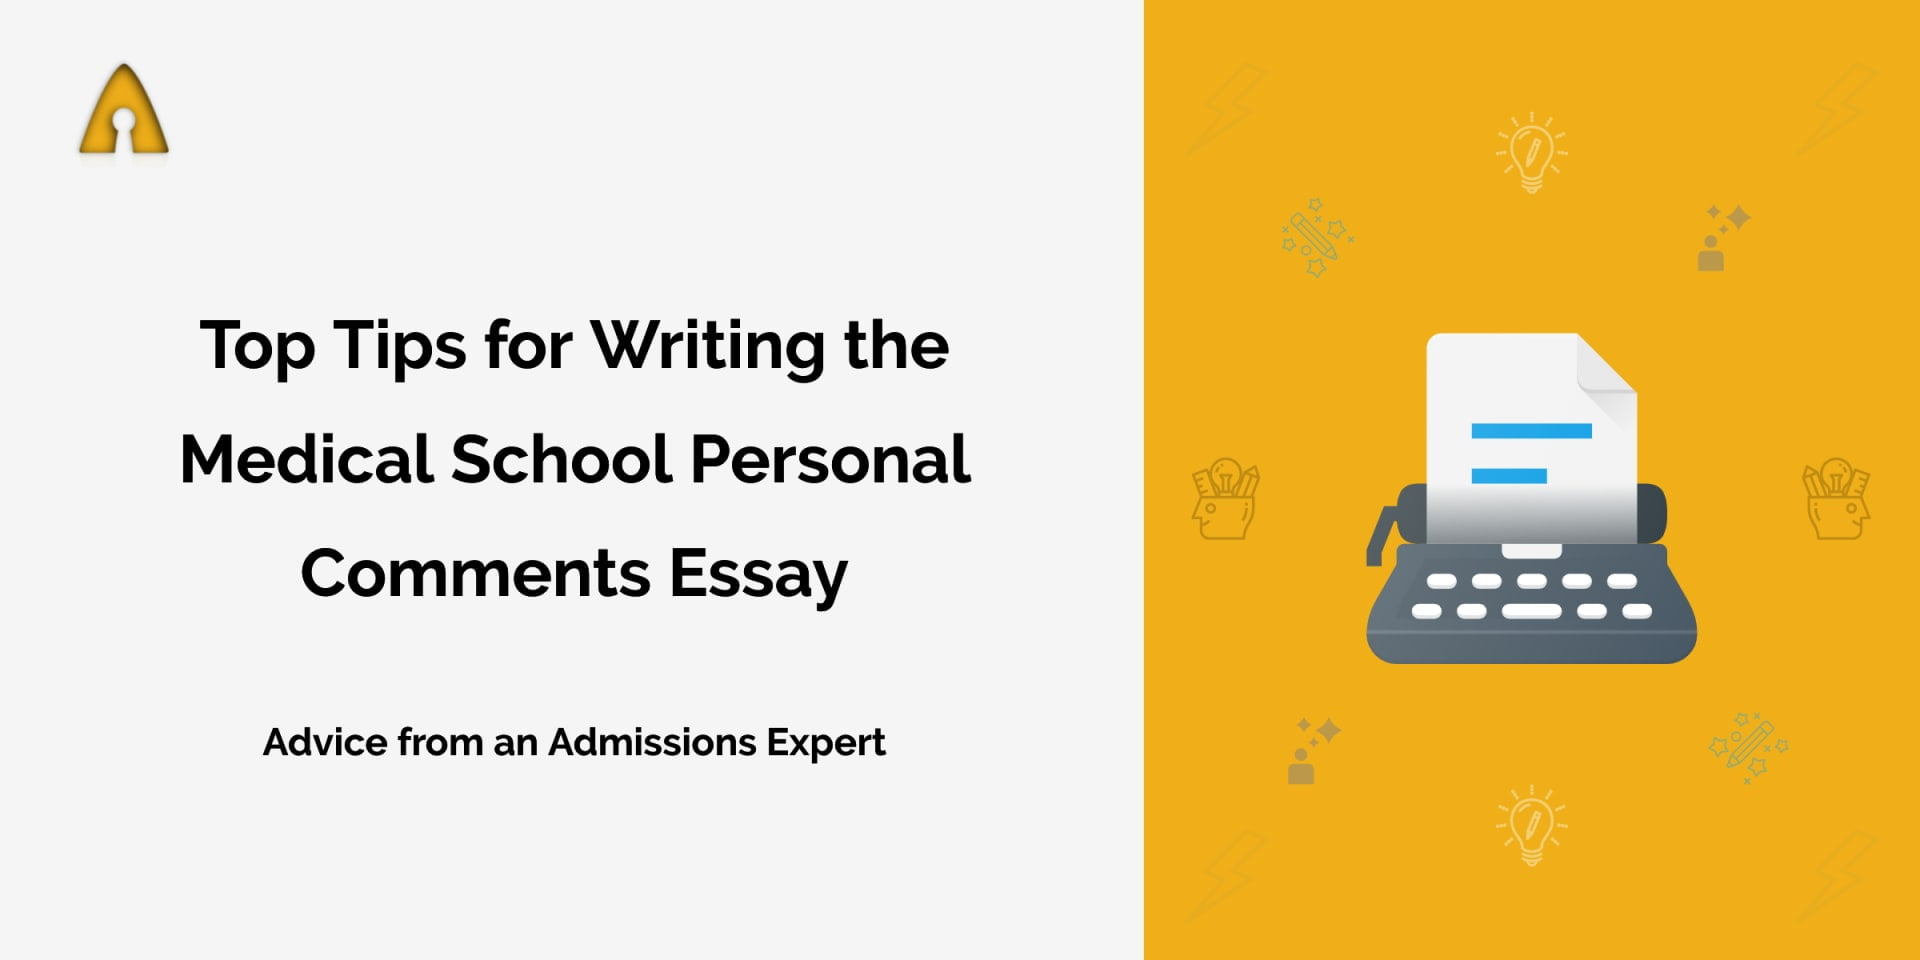 personal comments essay feature image